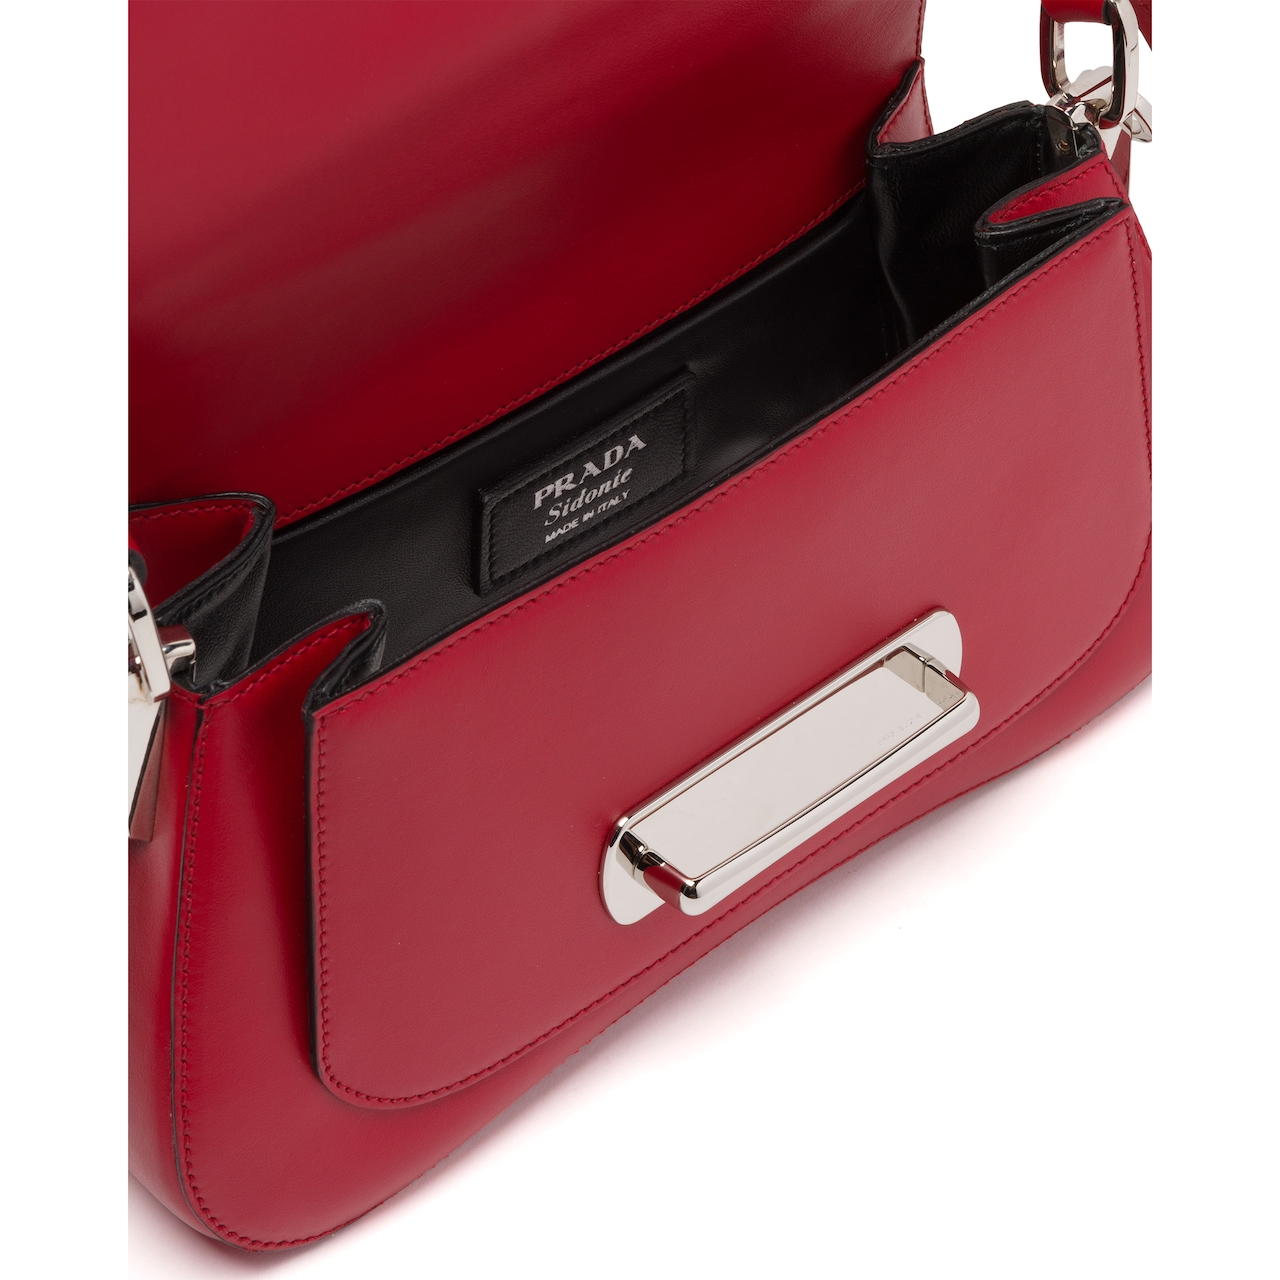 Prada Prada Sidonie shoulder bag 5